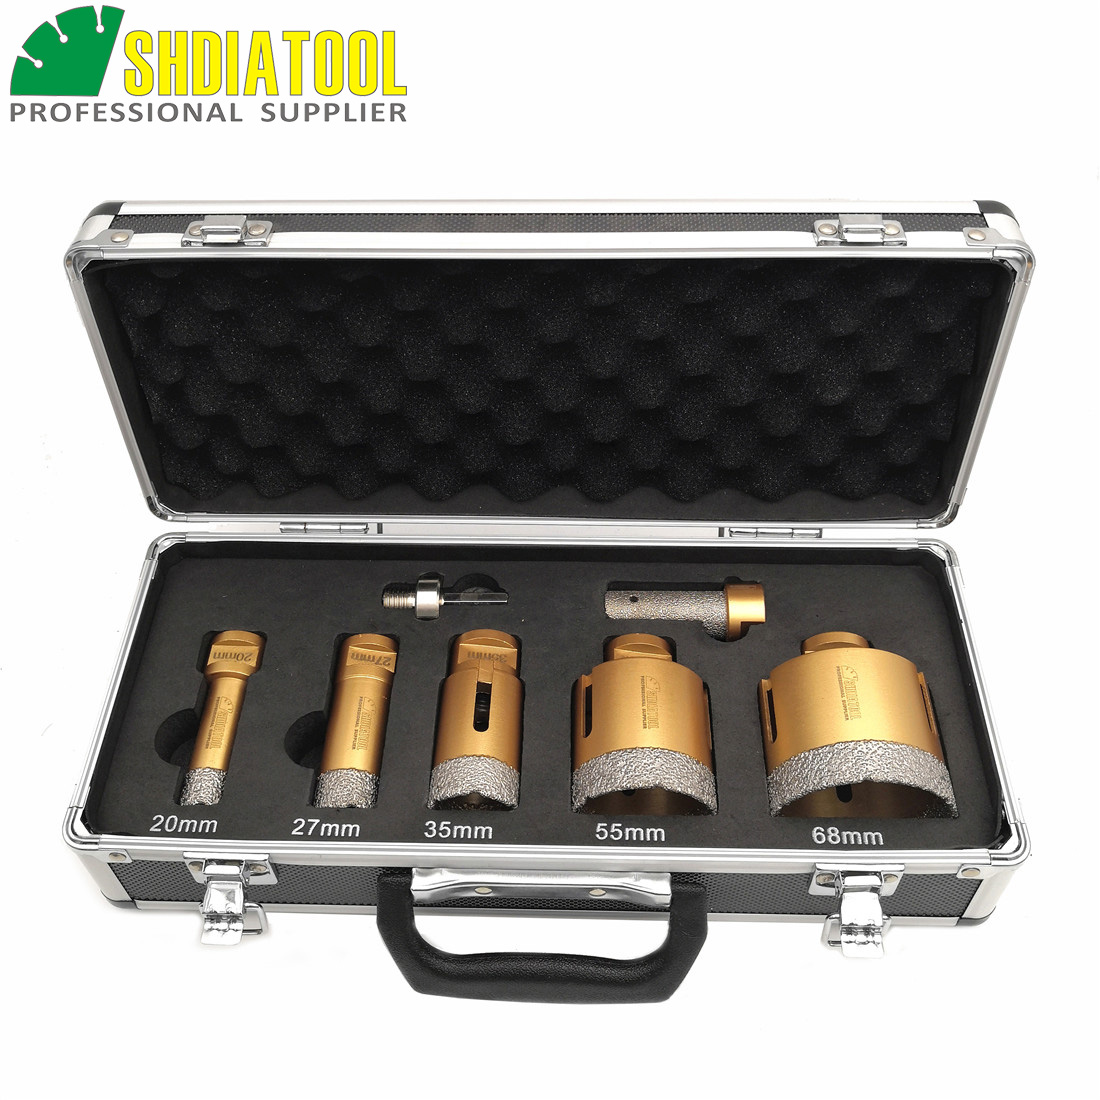 SHDIATOOL 1set M14 Vacuum Brazed Diamond Drill Core Bits With Box Dia20/27/35/55/68mm Hole Saw Adapter Marble Ceramic Finger Bit